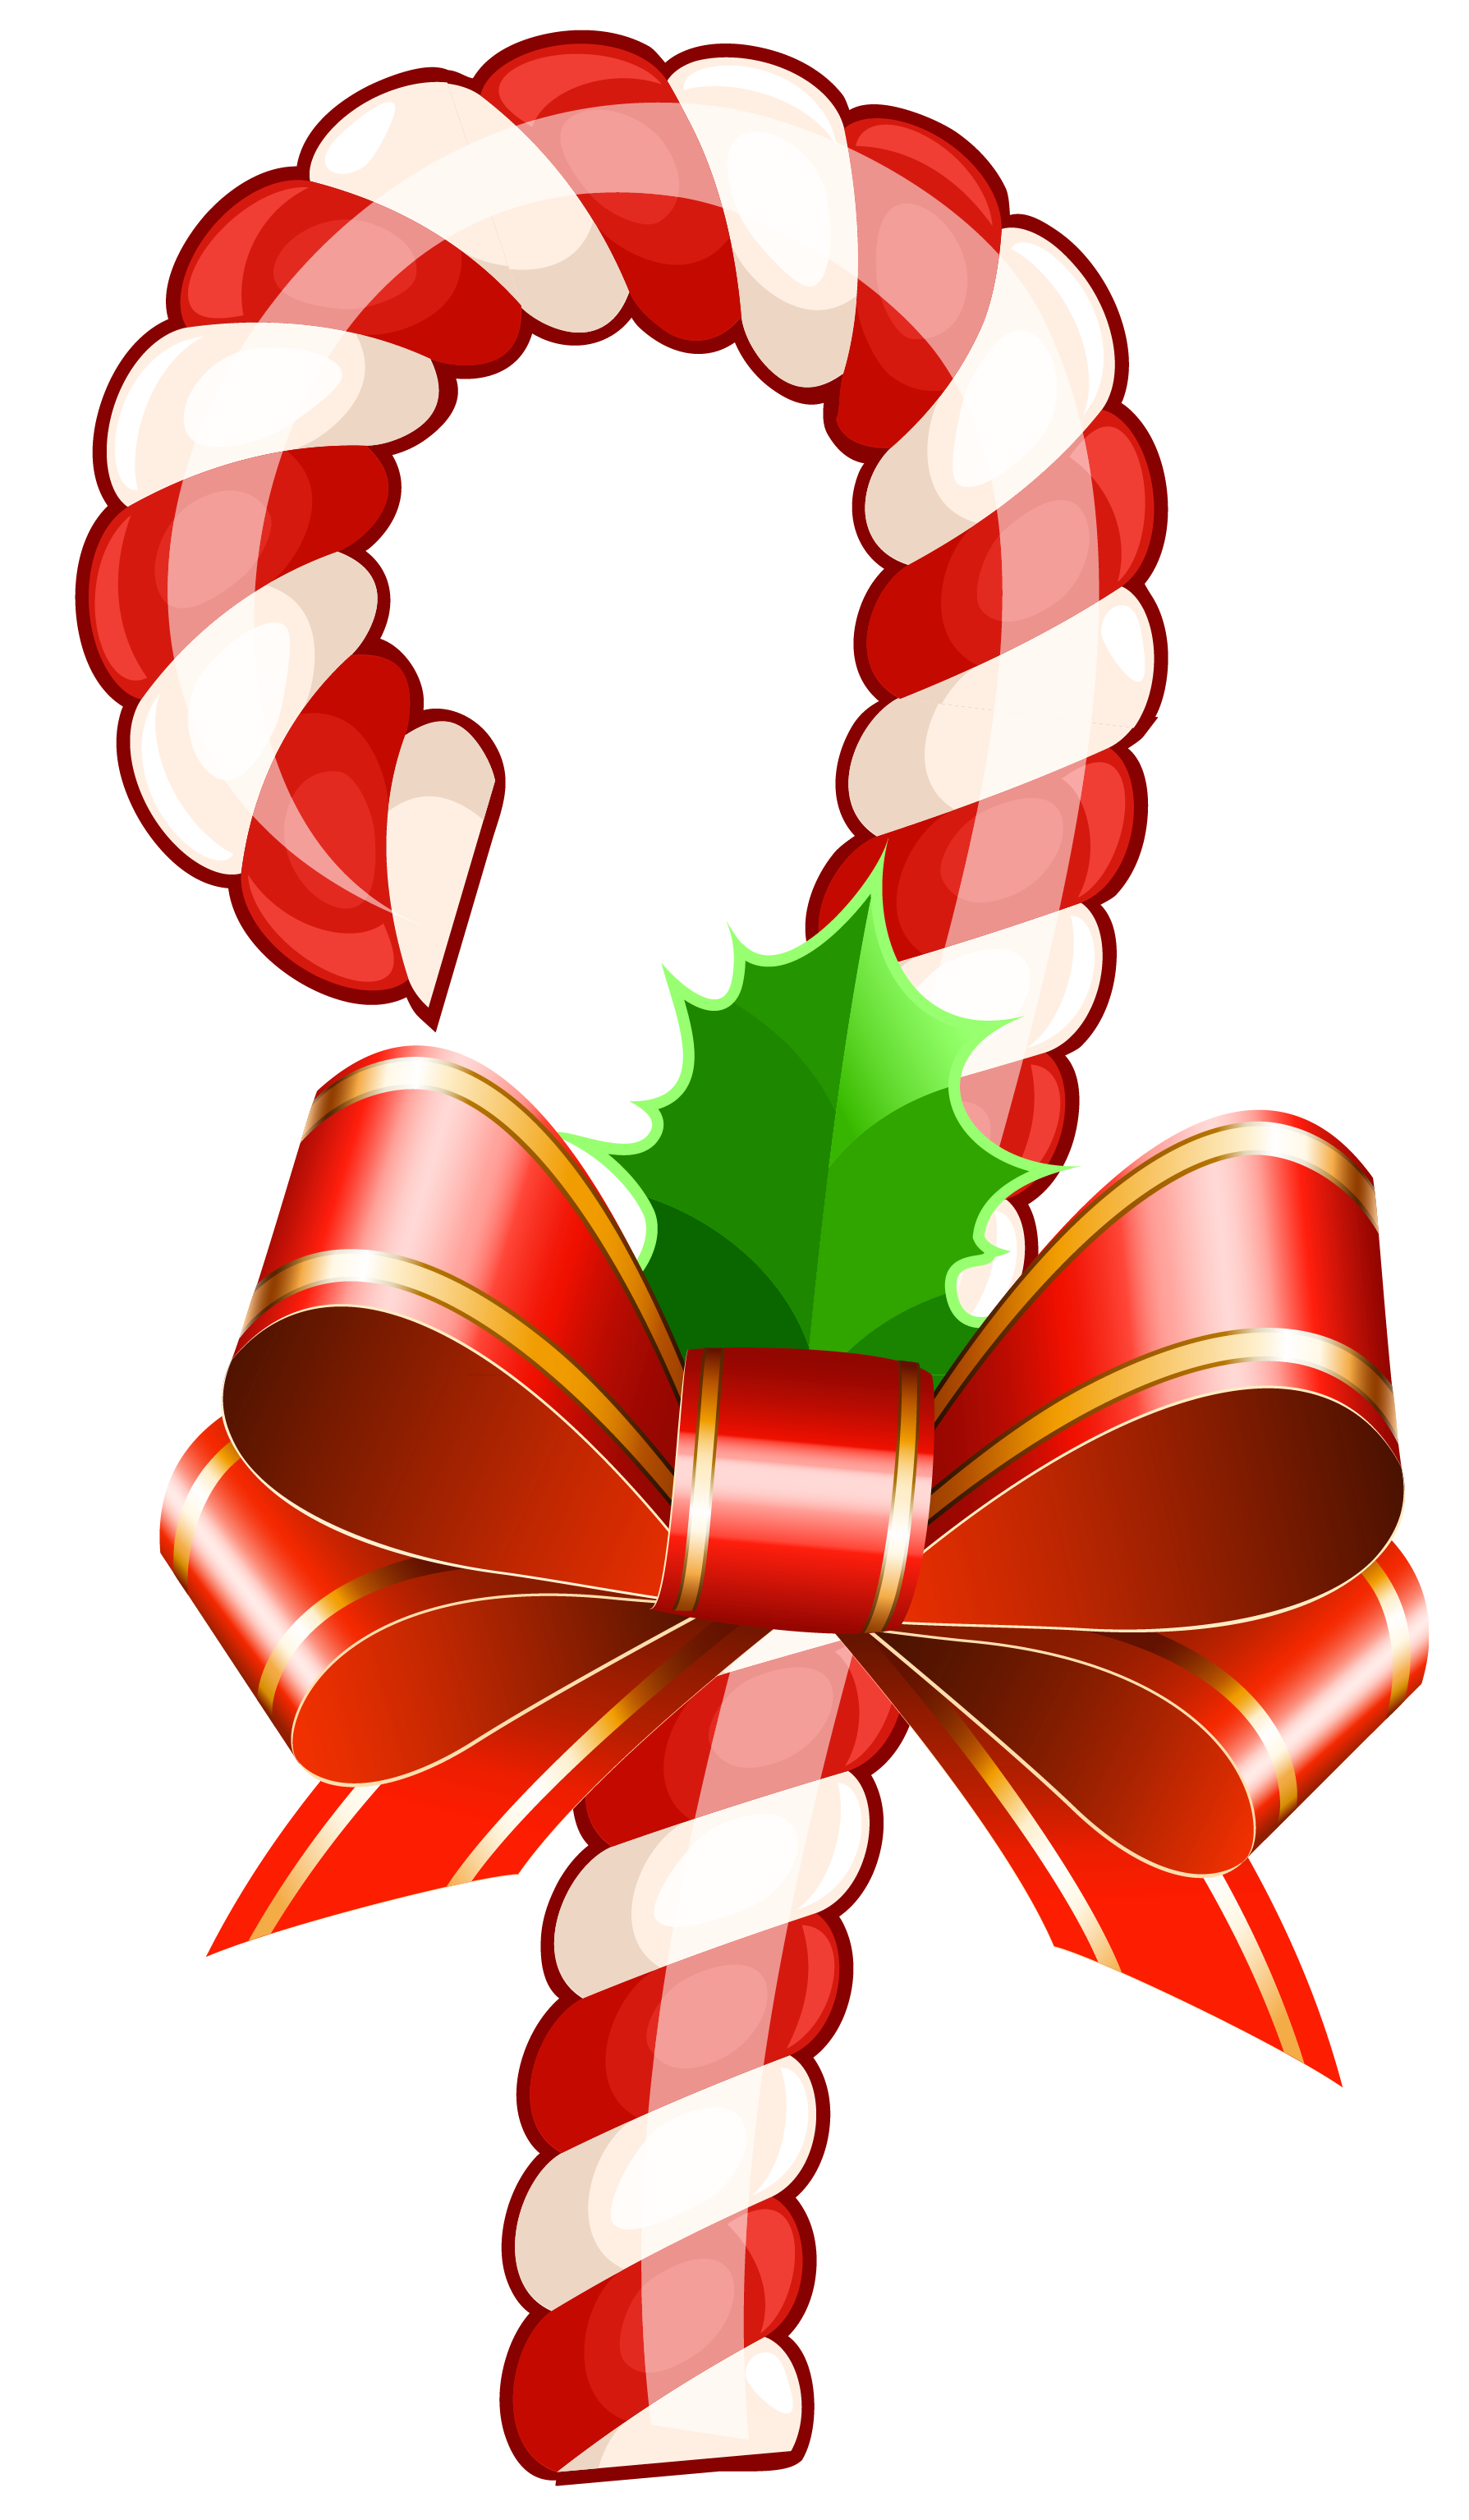 candy cane clipart png Google Search Christmas clipart